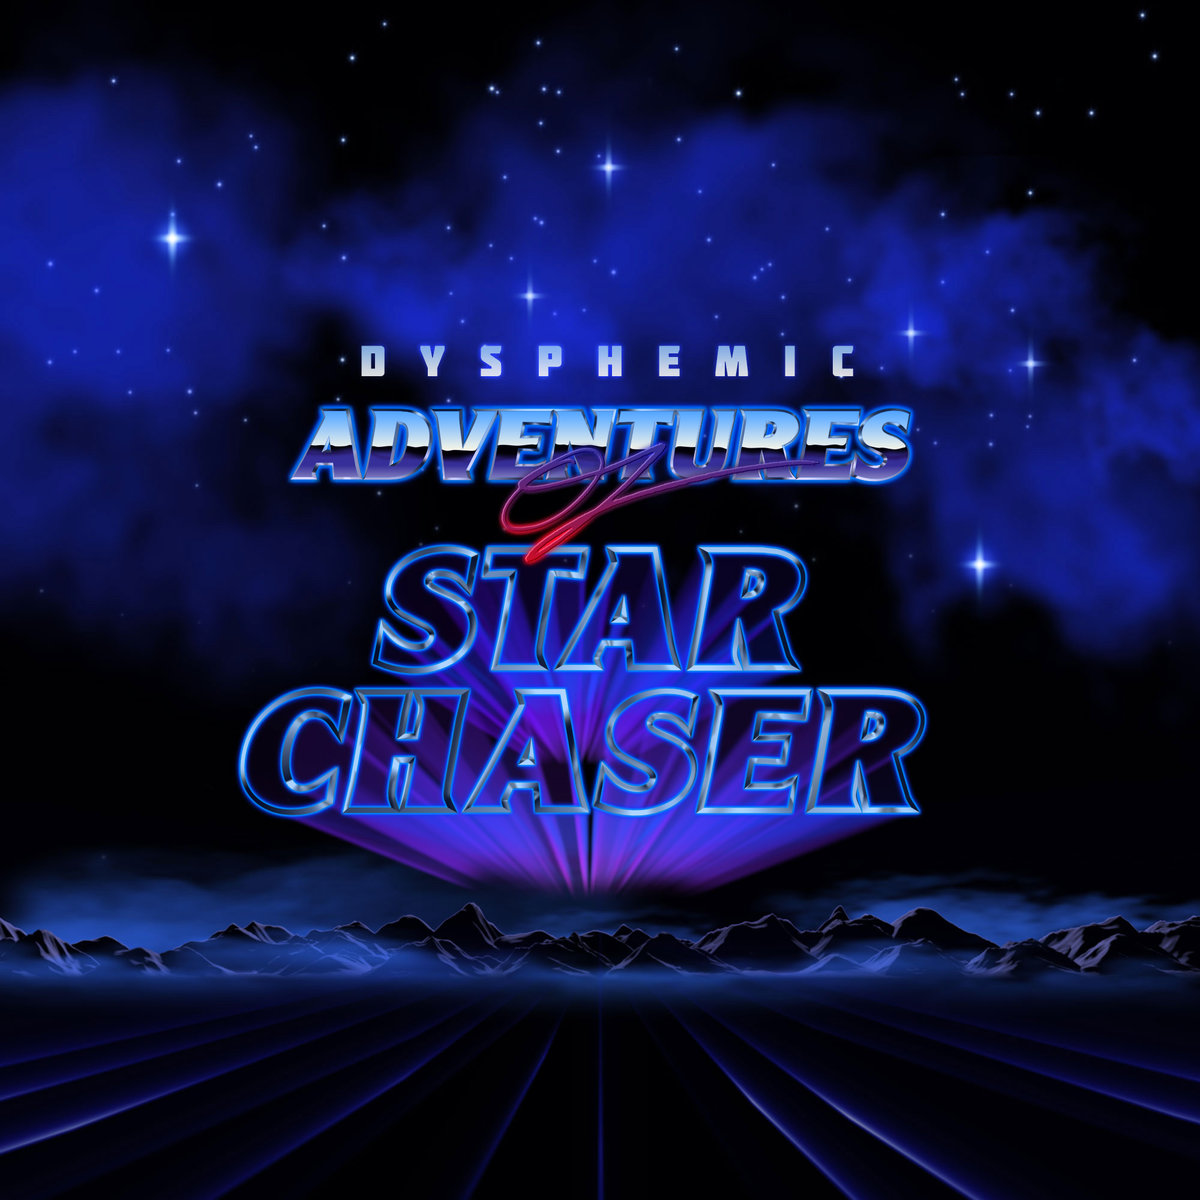 Dysphemic - Adventures of Star Chaser @ 'Adventures of Star Chaser' album (Austin)